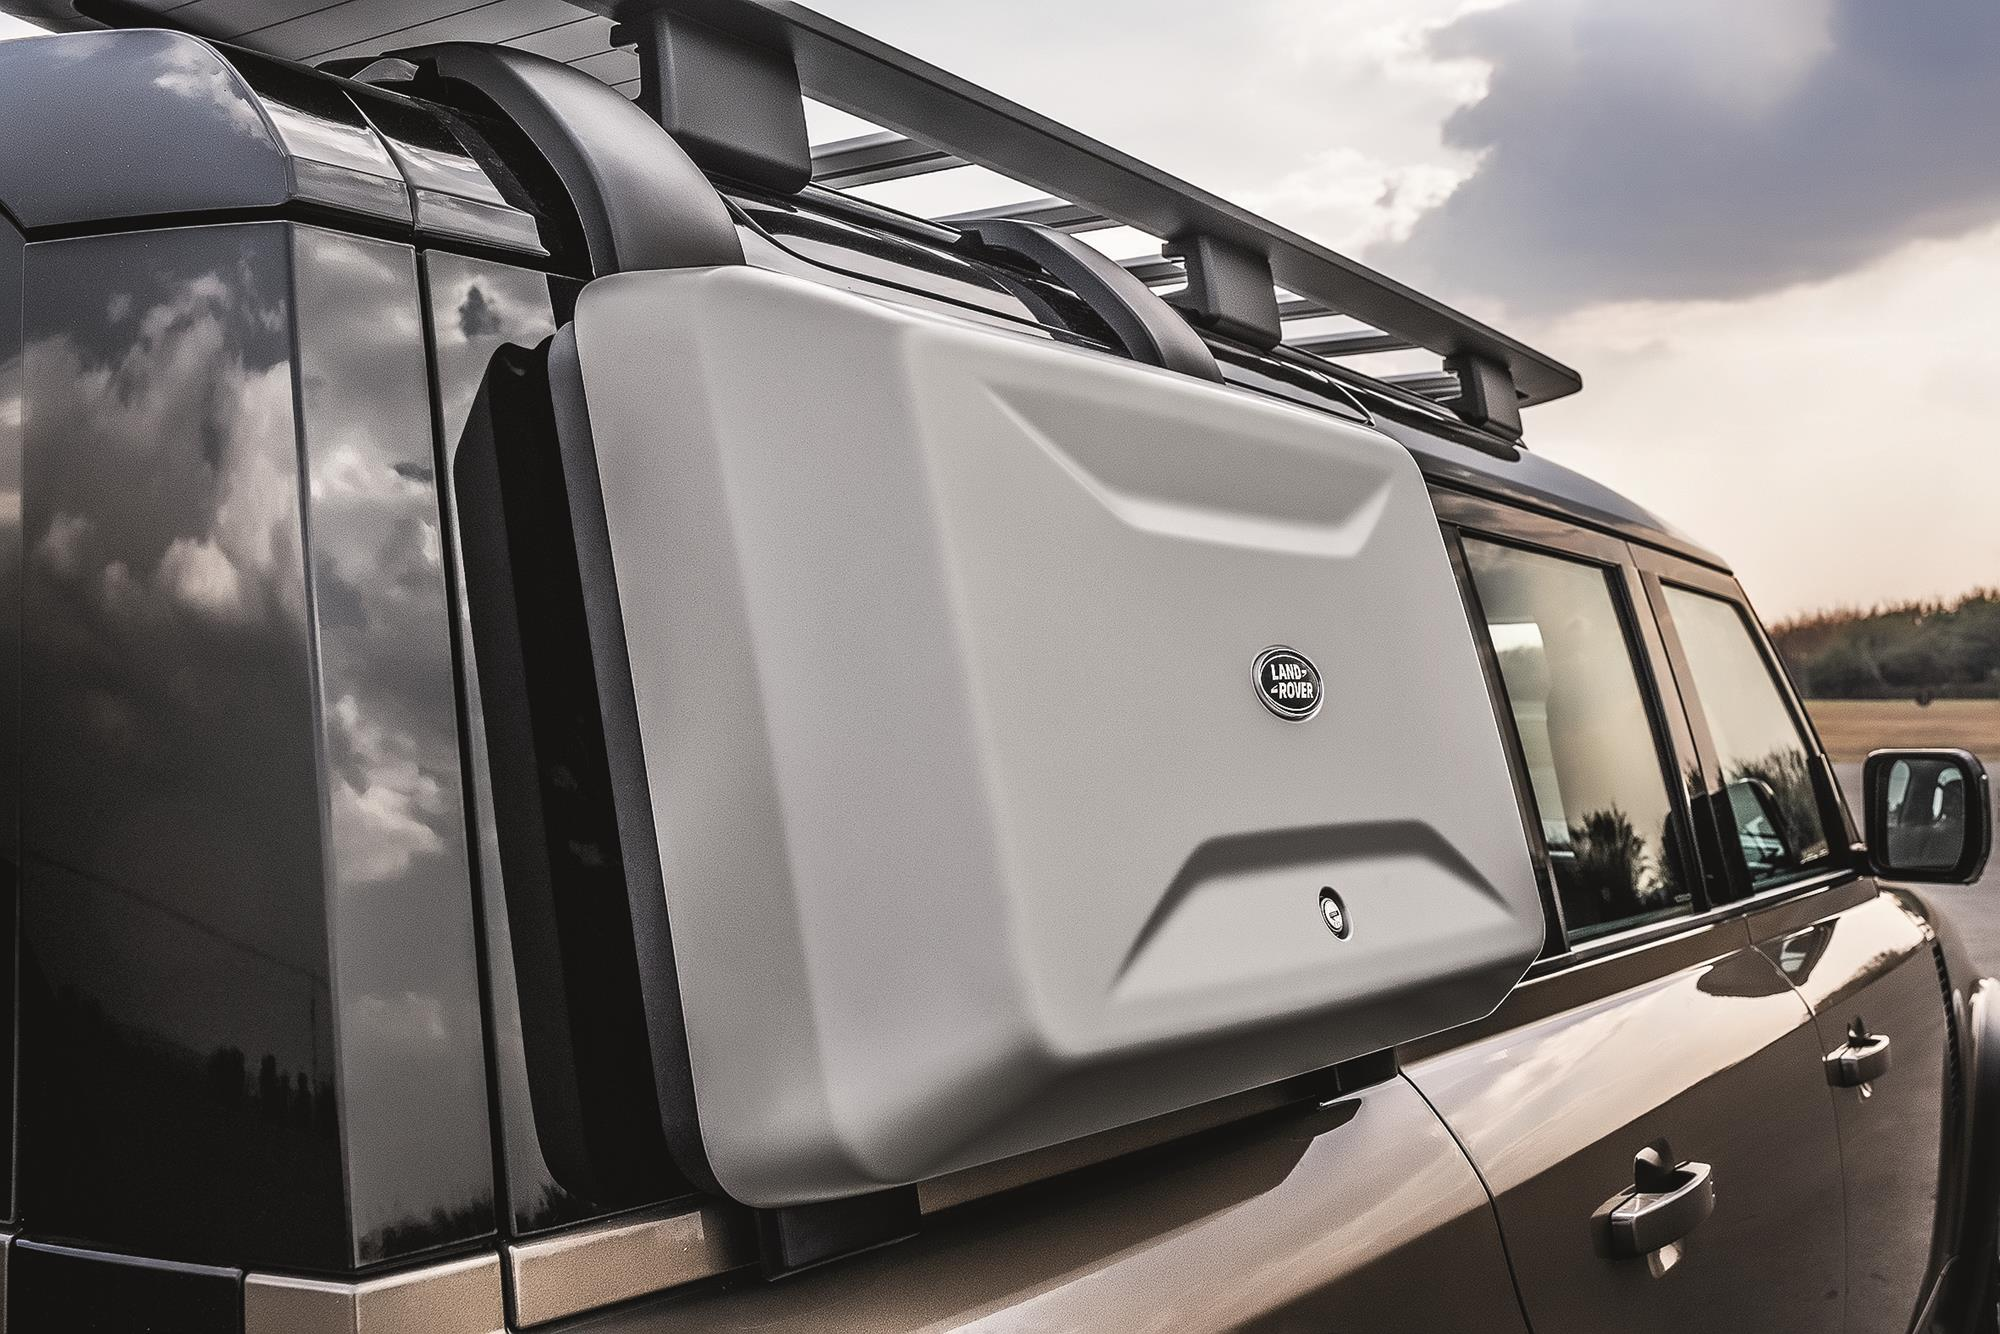 Land Rover Defender HSE 2021 porta objeto lateral